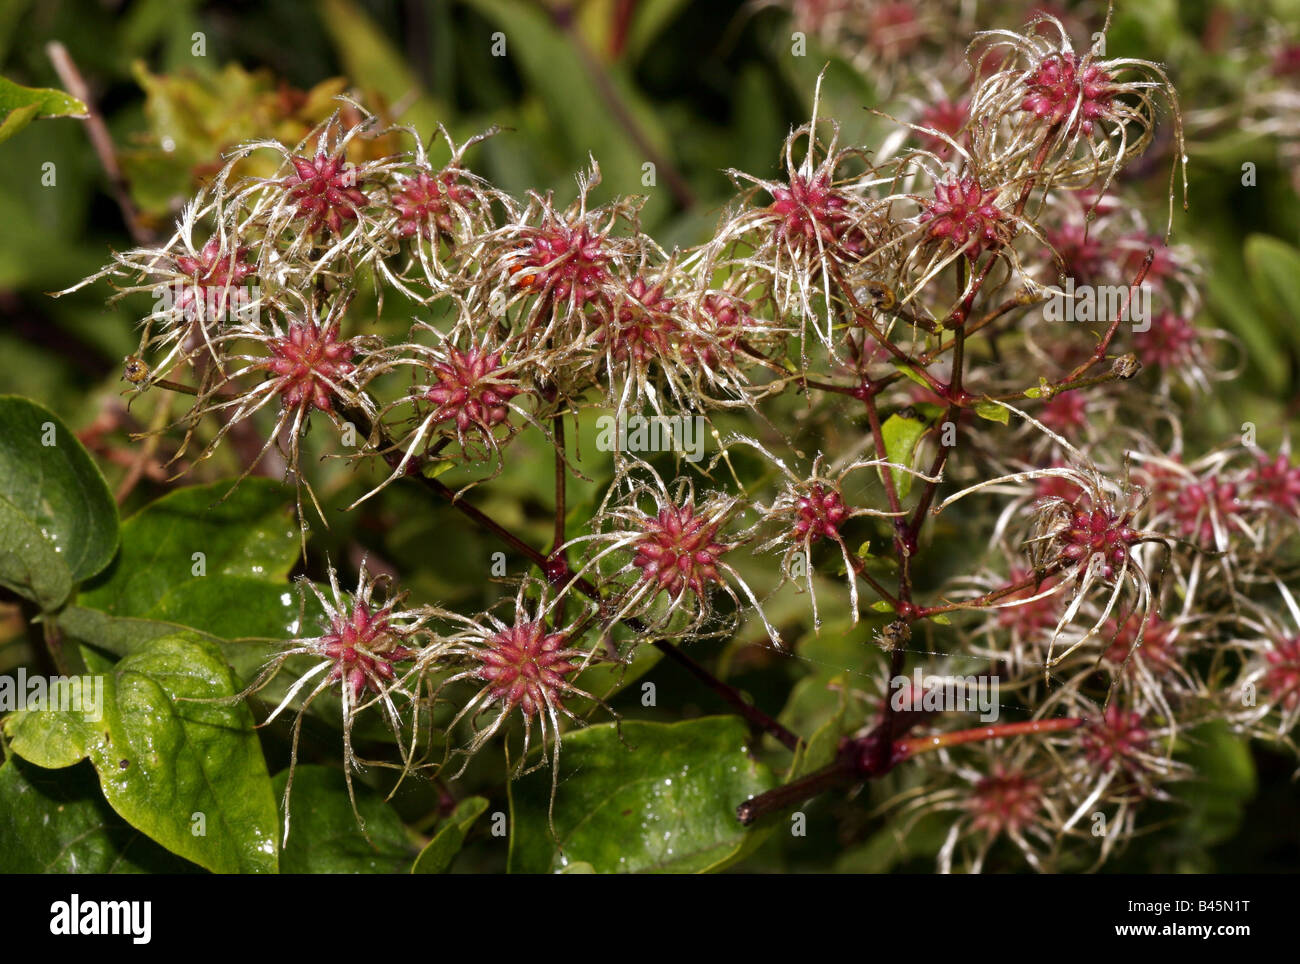 botany, Clematis, 'Clematis vitalba', infructescence, Leitha mountains, Austria, Additional-Rights-Clearance - Stock Image